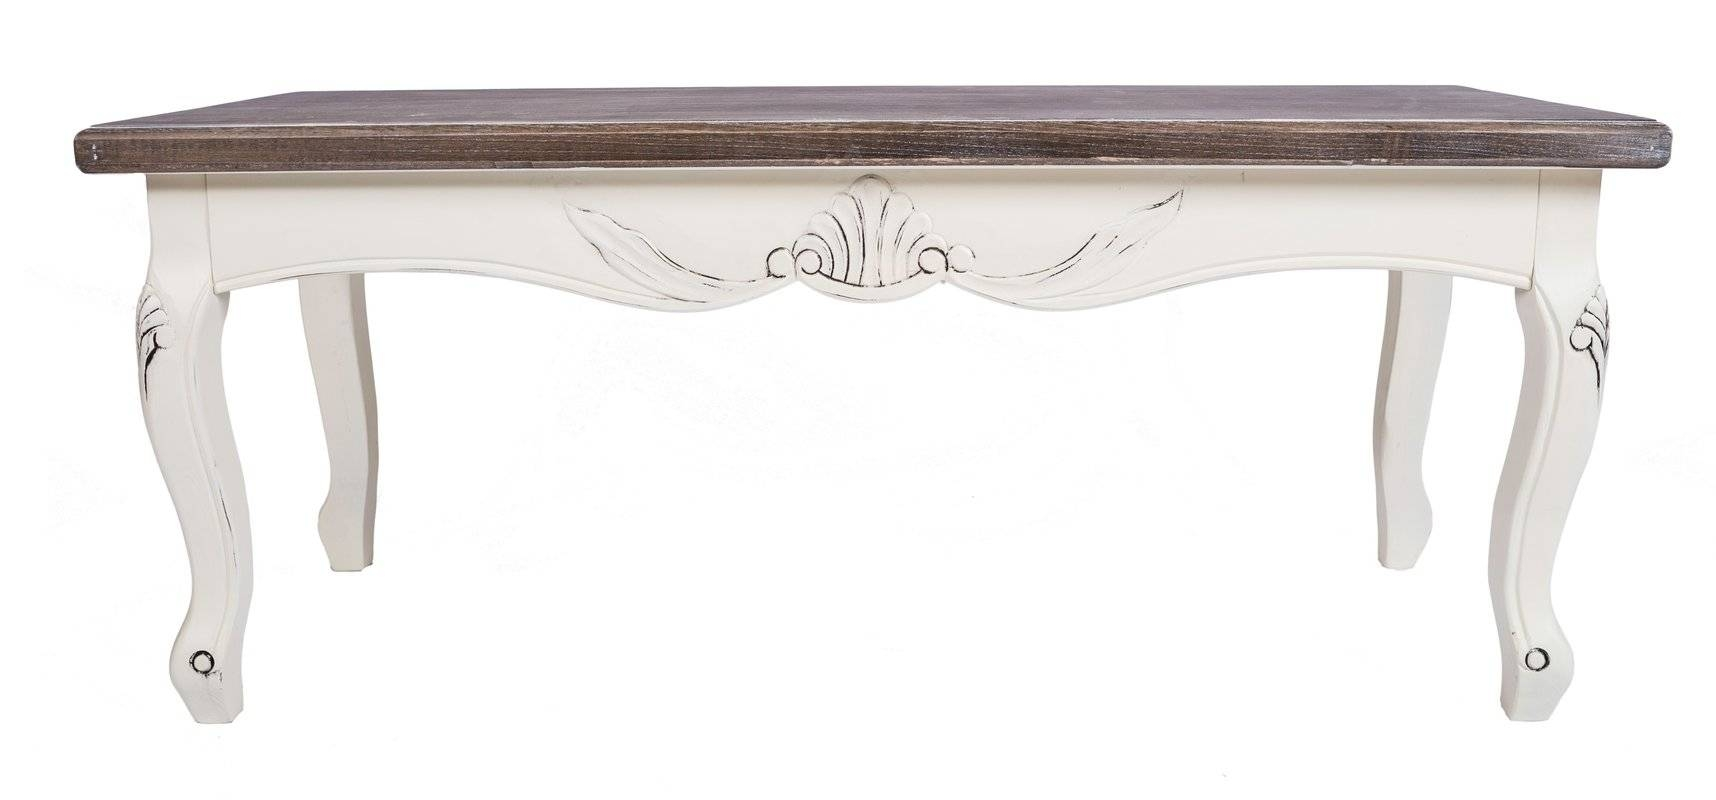 Derry's Heritage Coffee Table & Reviews | Wayfair.co.uk regarding Heritage Coffee Tables (Image 15 of 30)